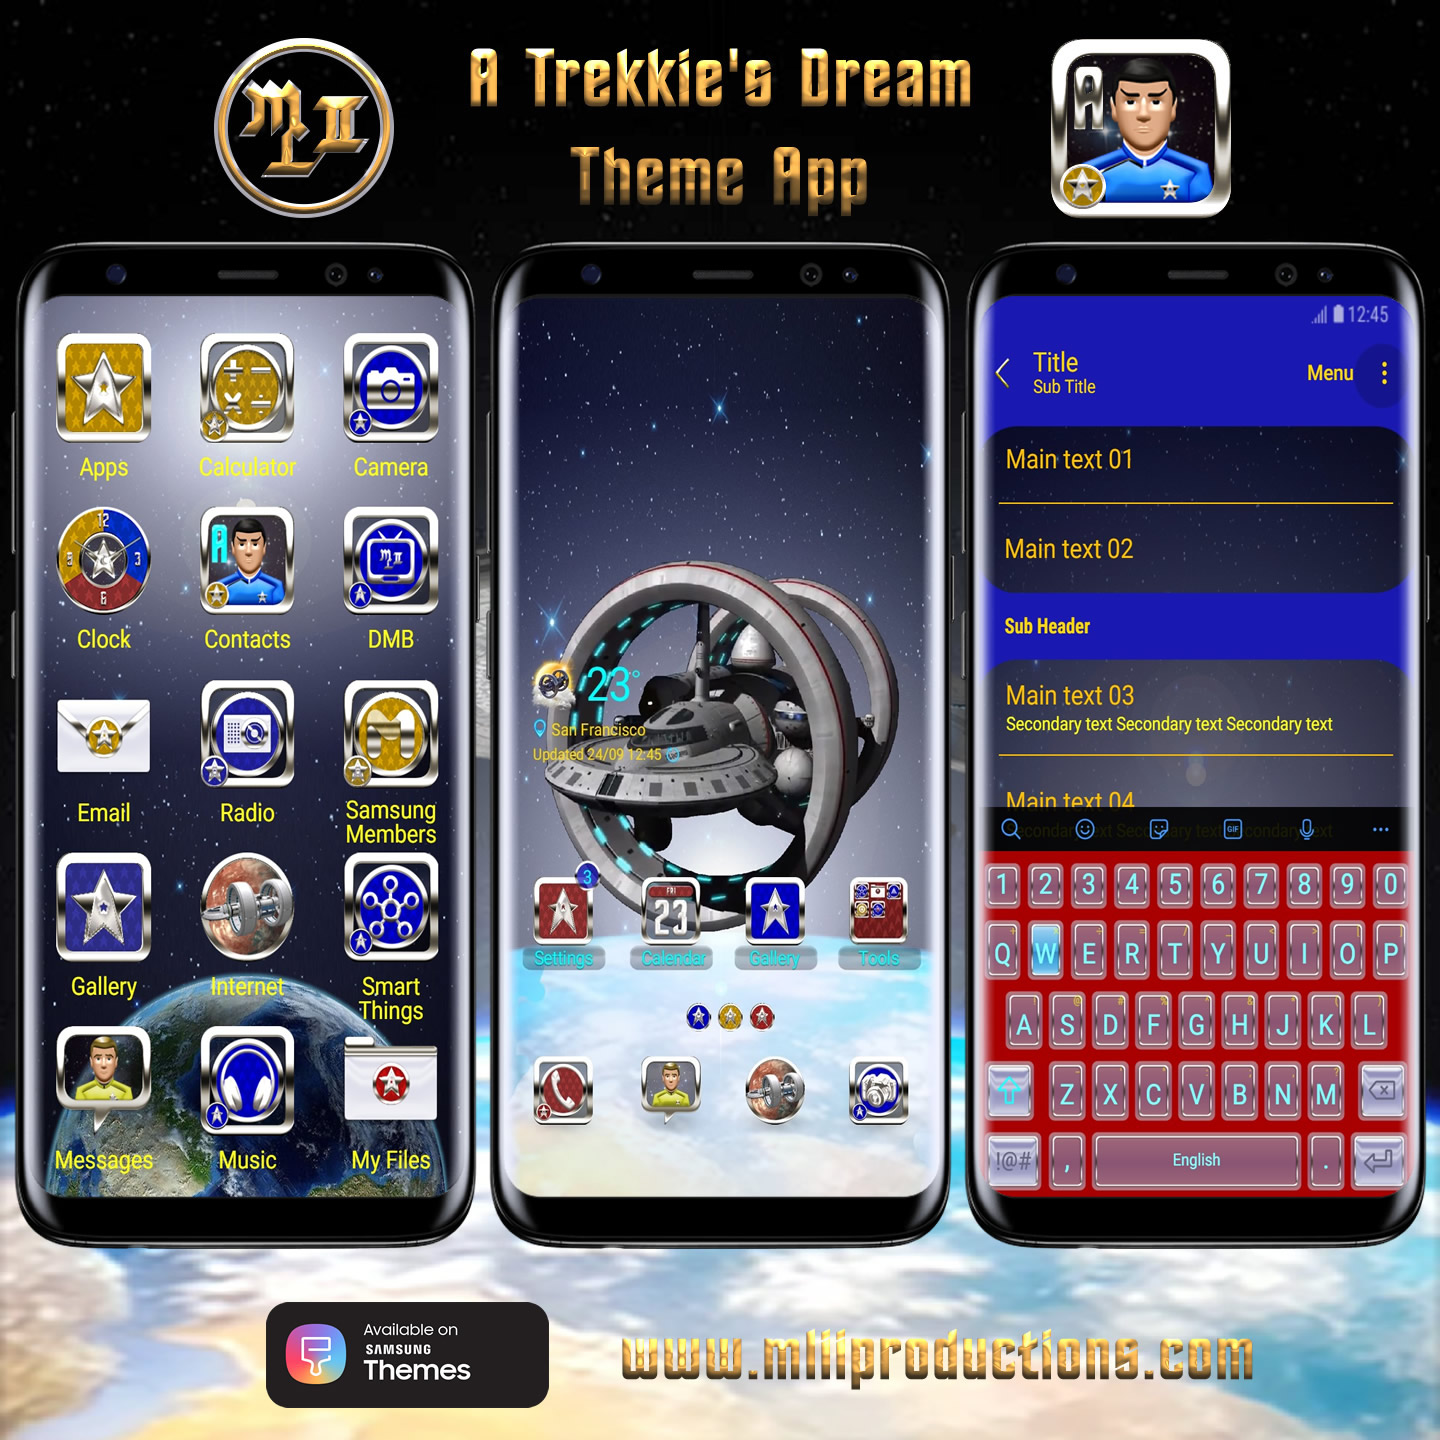 A Trekkies Dream Theme App